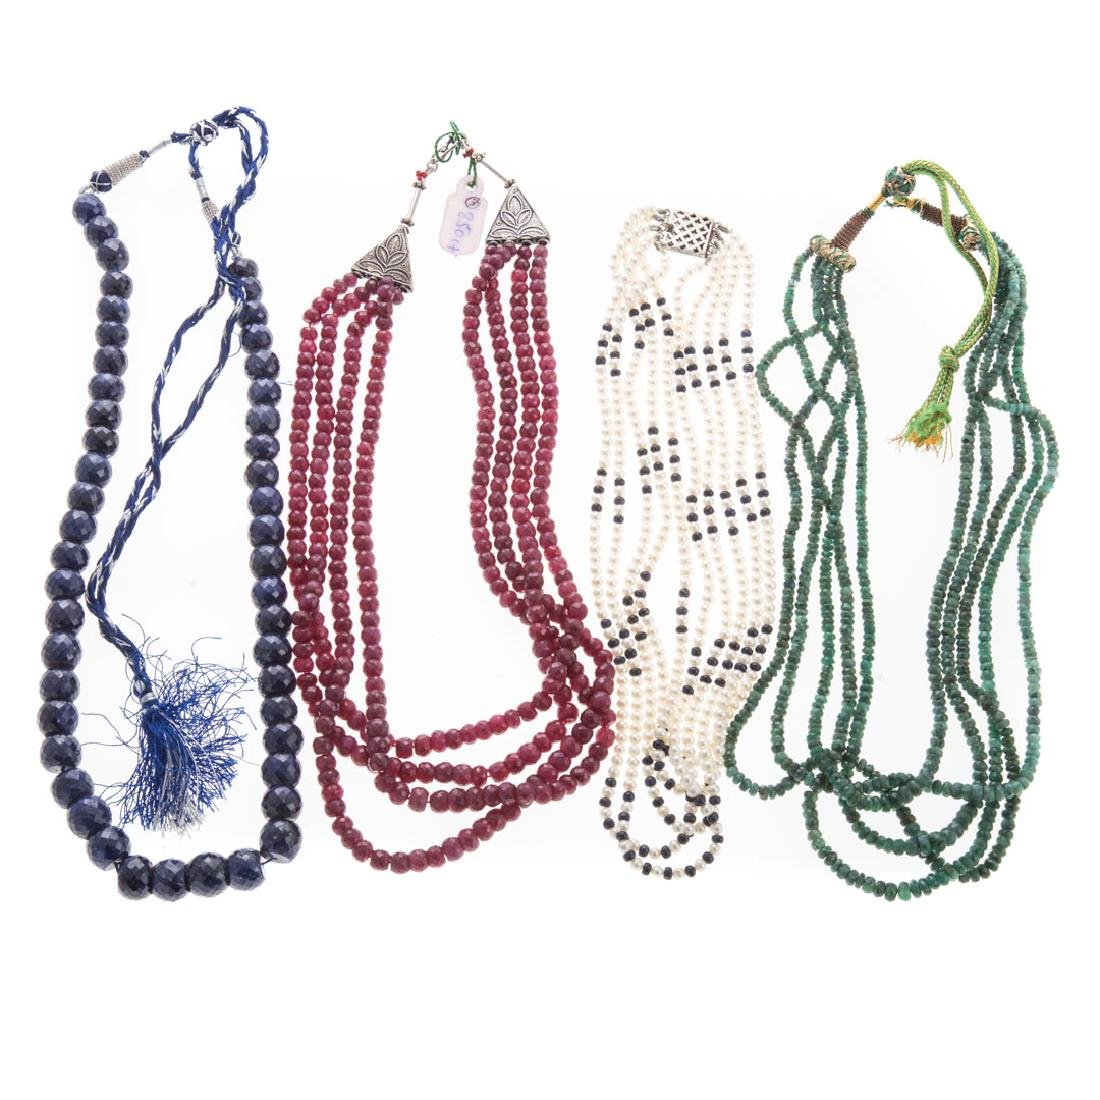 A Selection of Natural Gemstone Necklaces